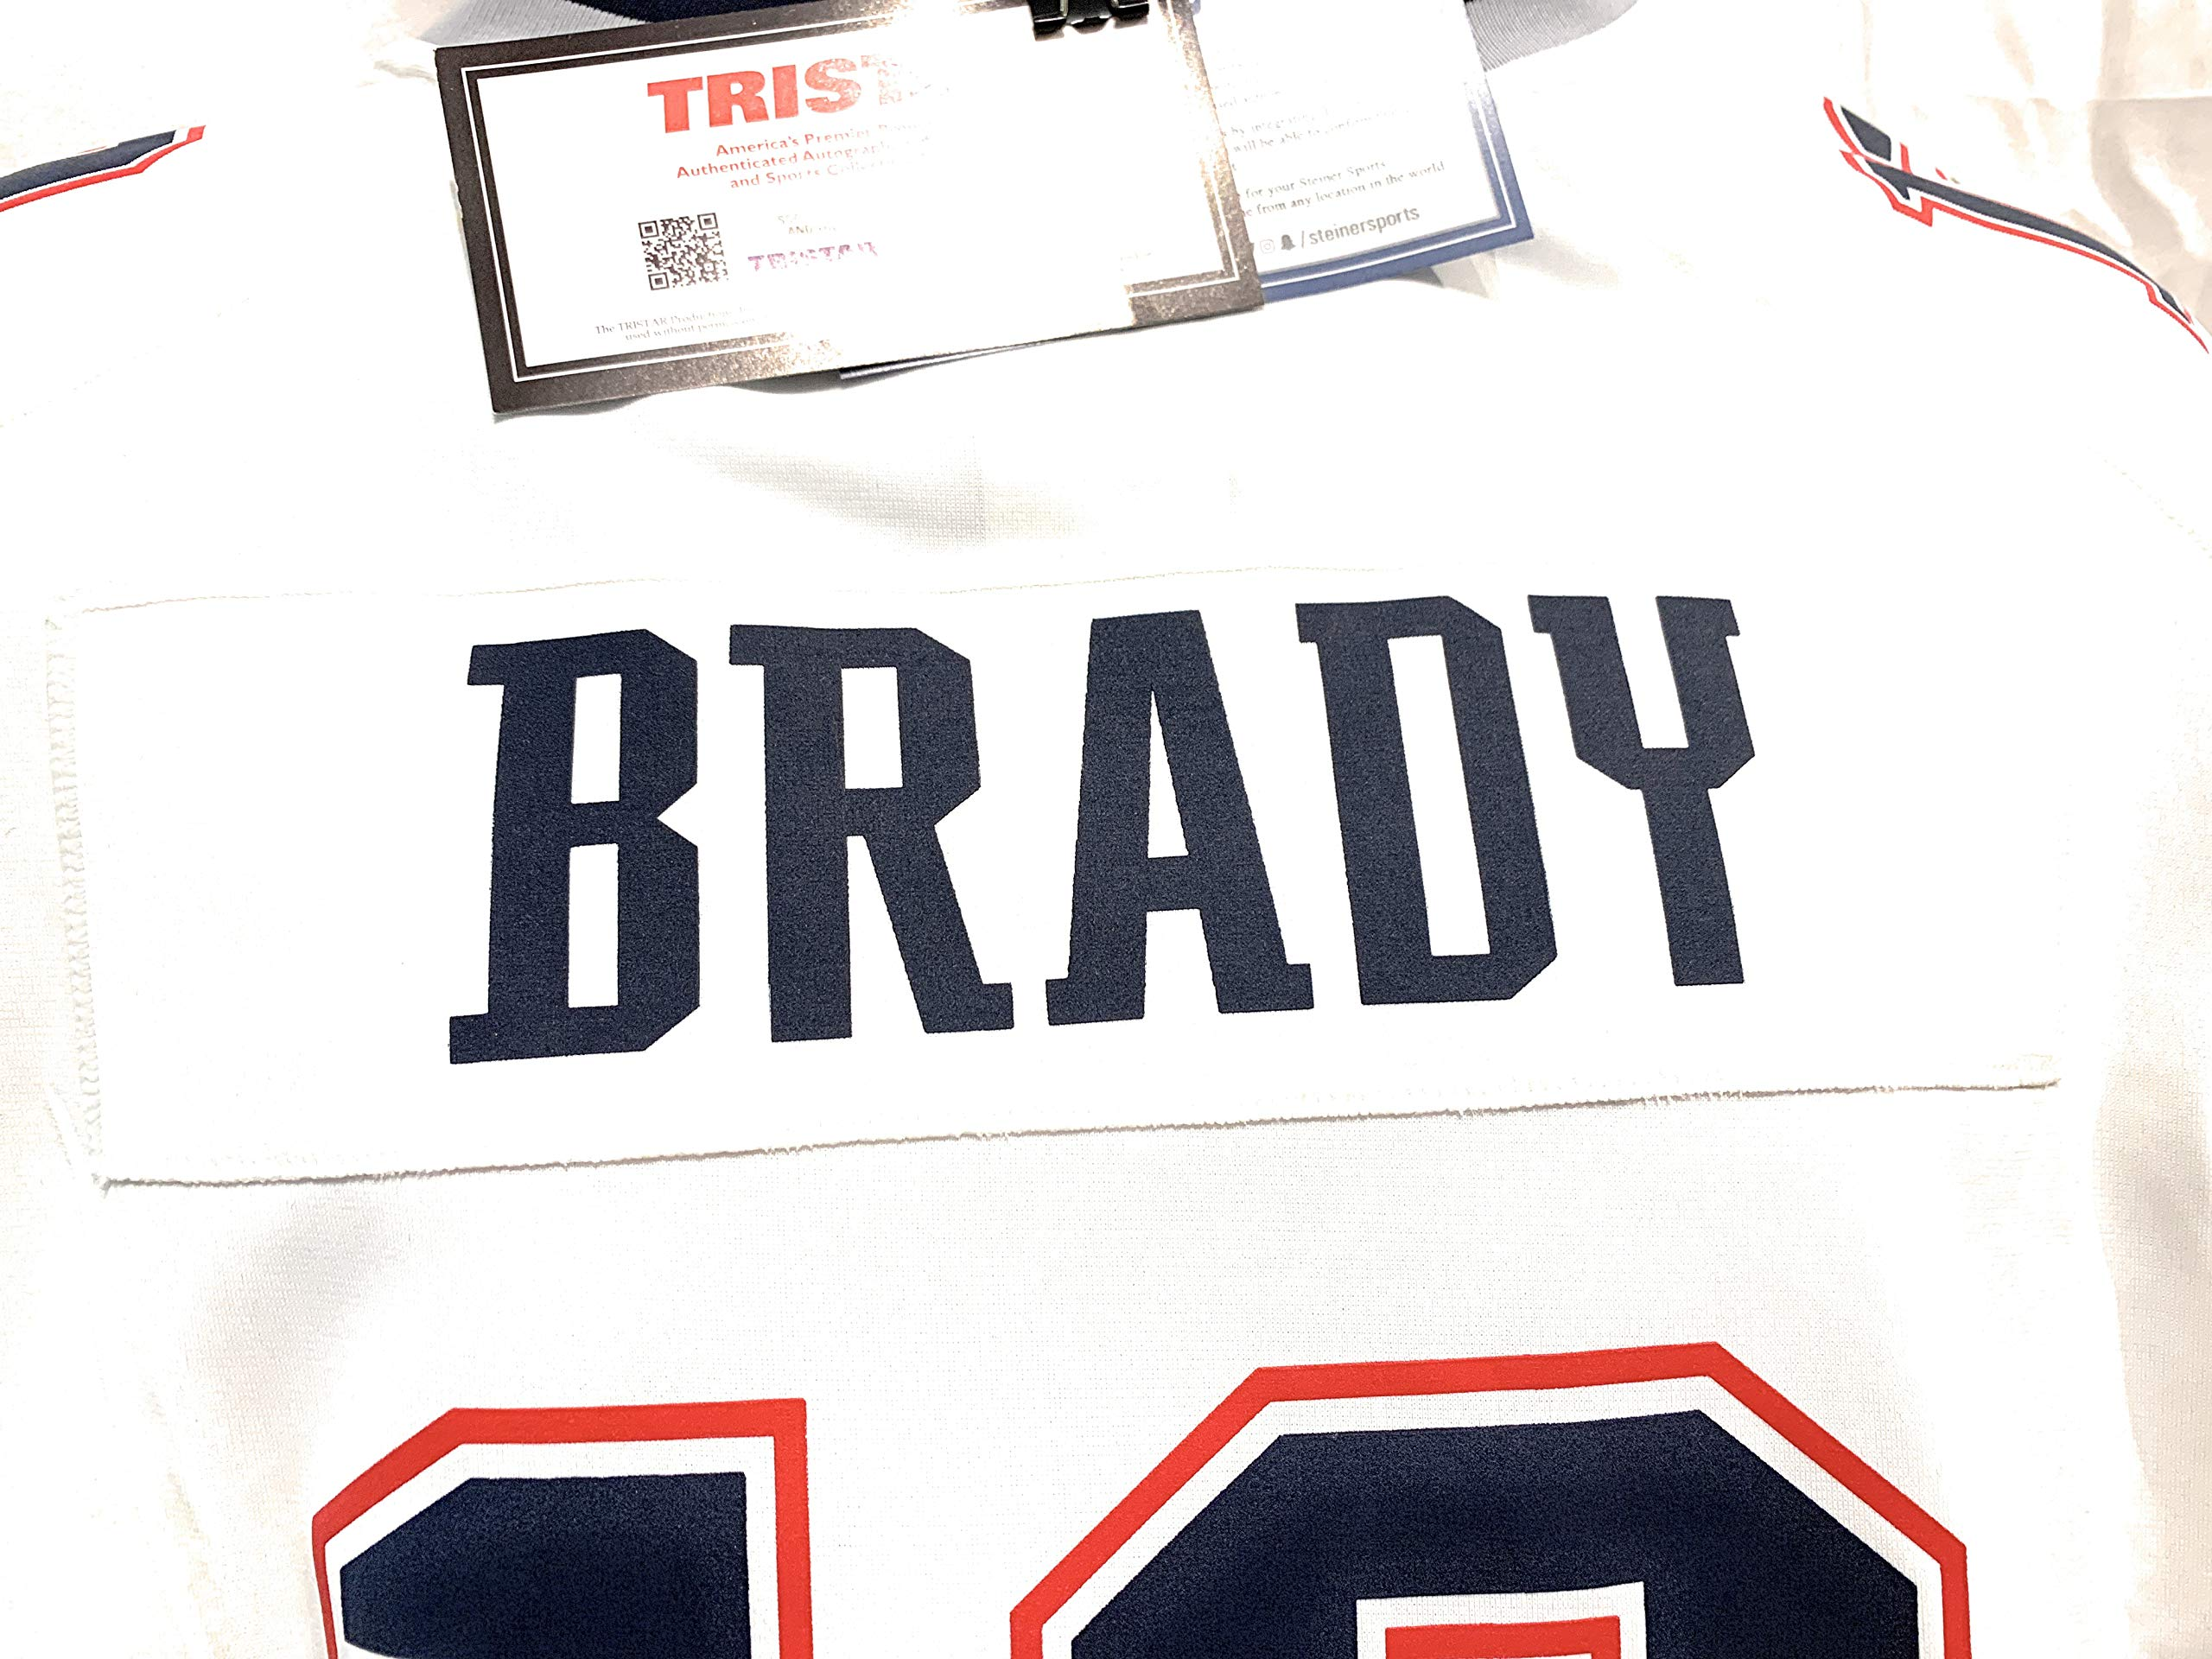 Tom Brady New England Patriots Signed Autograph Nike Replica White Jersey #2 Tristar Authentic & Steiner Sports Dual Certified